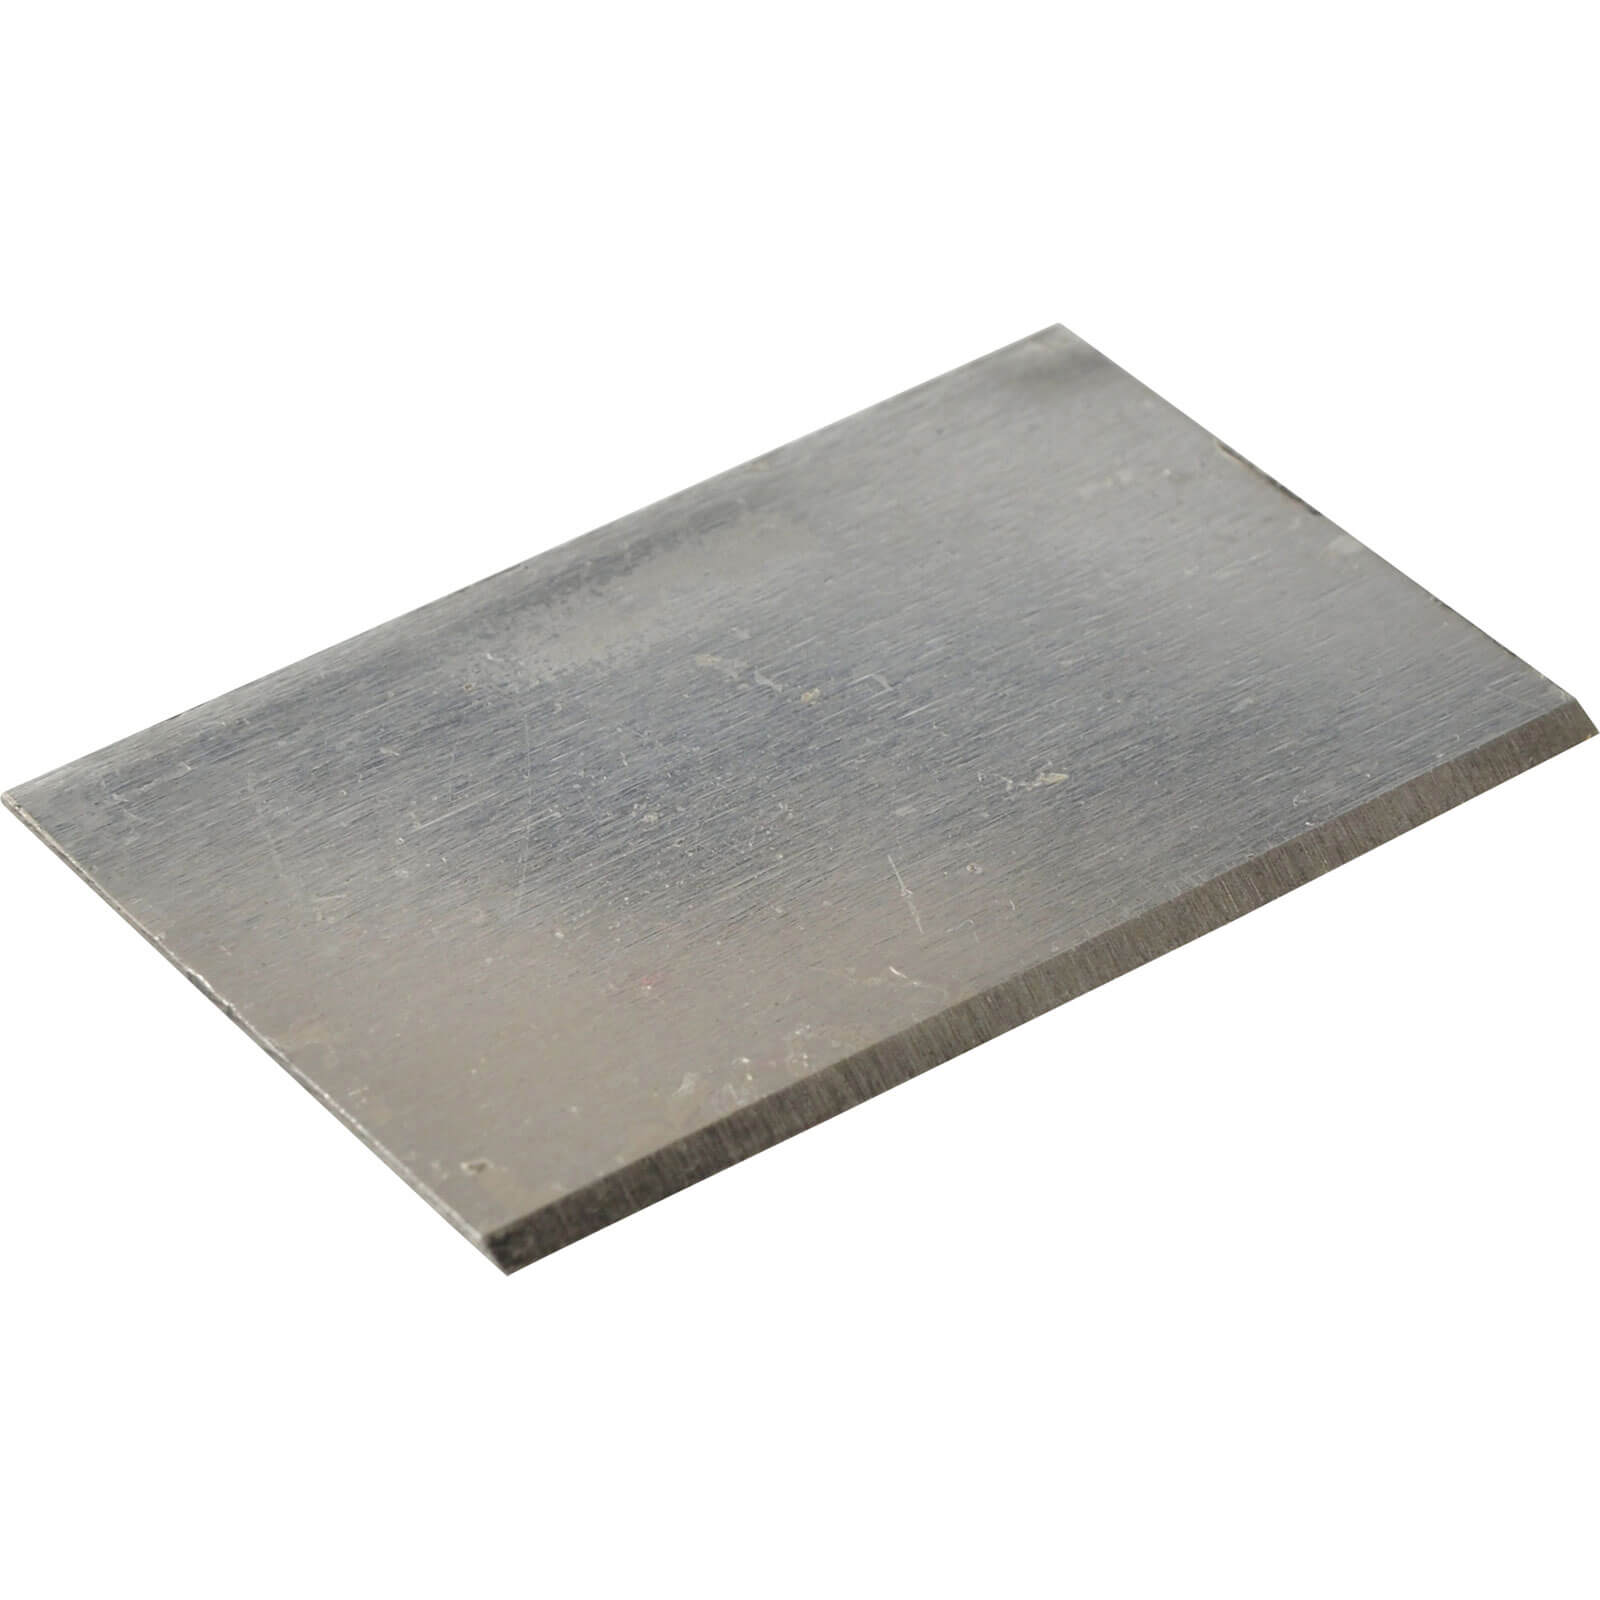 Image of Faithfull Replacement Cabinet Scraper Blade 70mm